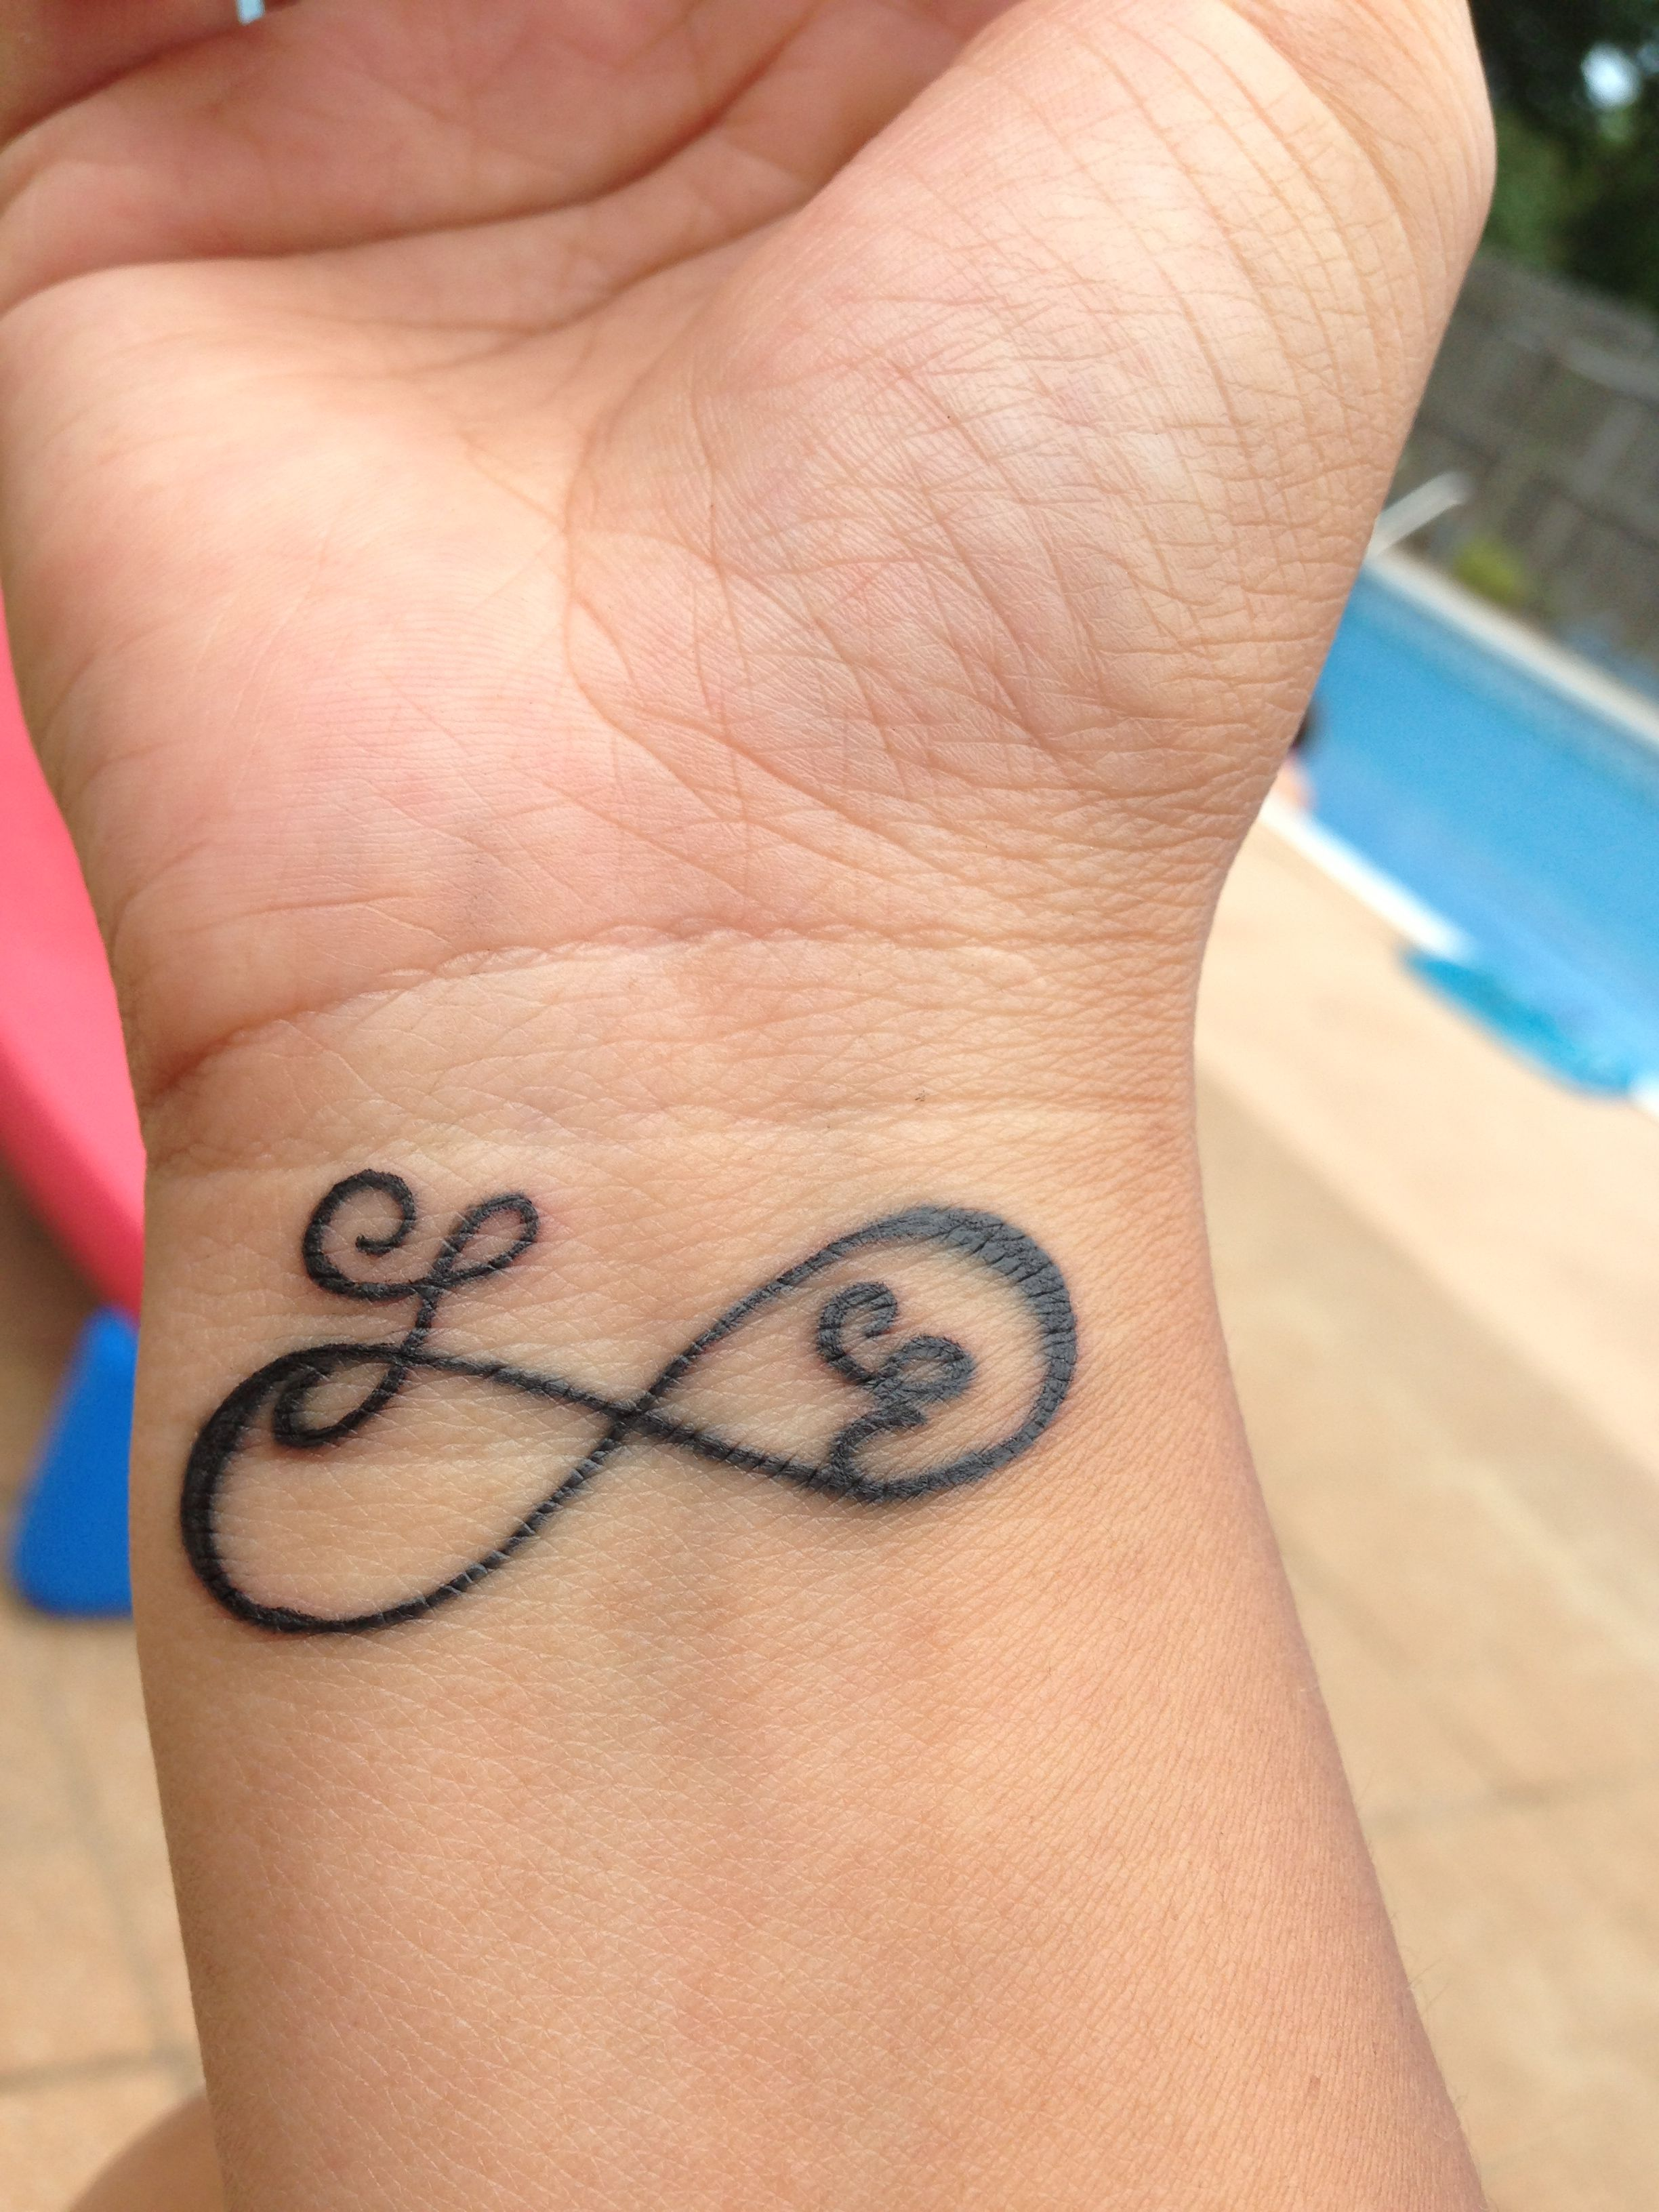 Initials Tattoo Ideas For SOS